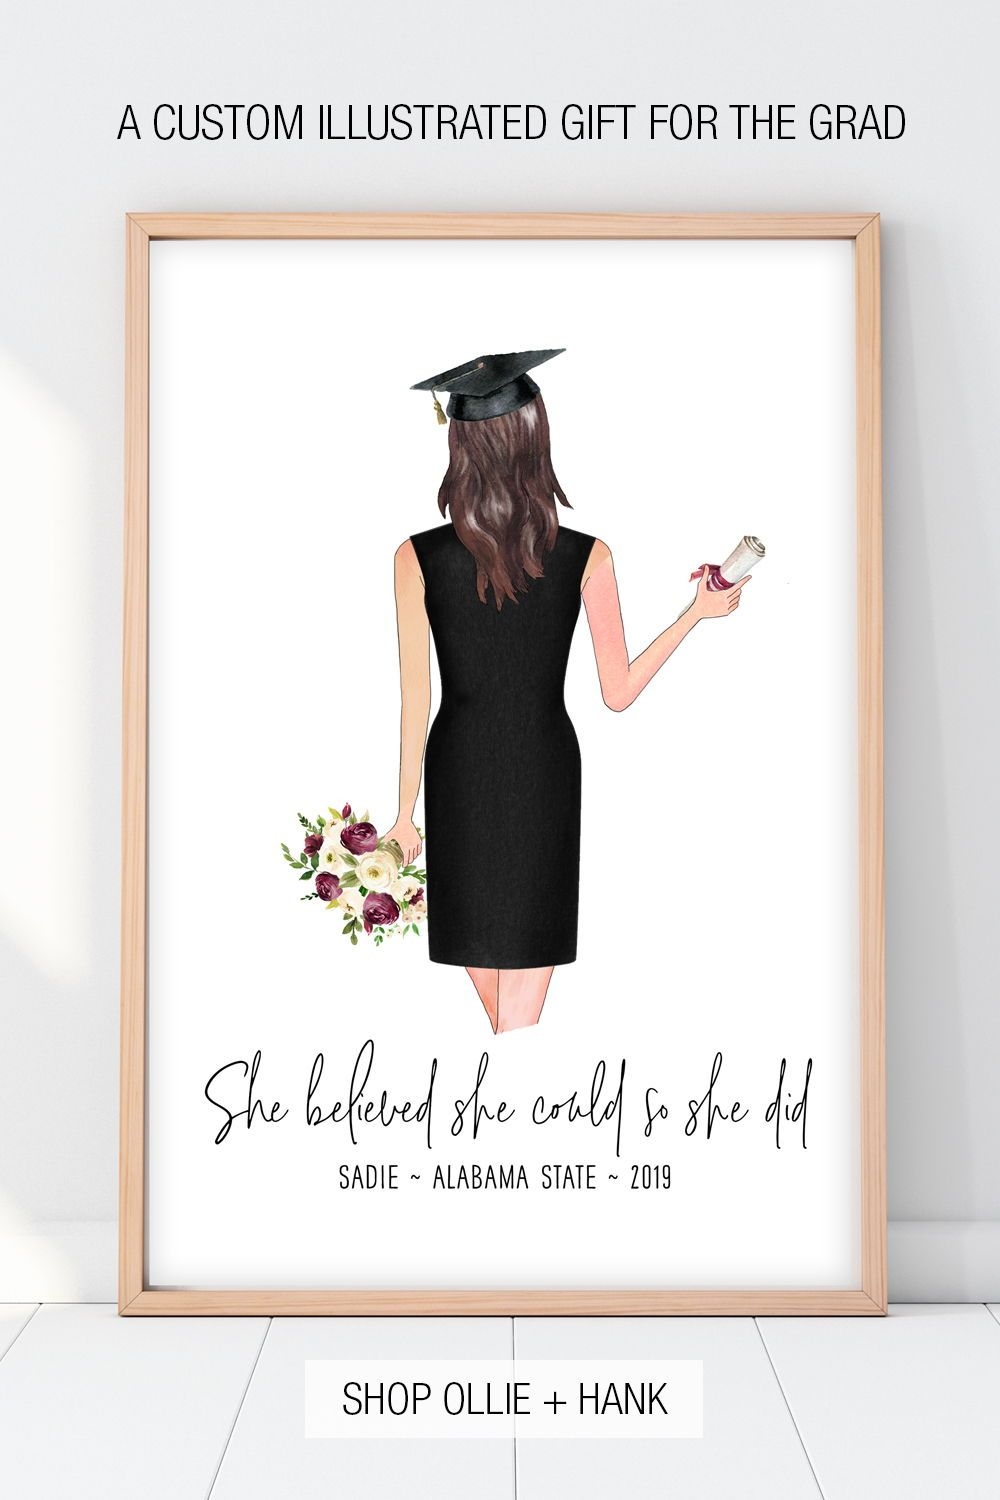 Graduation Gift Sister Personalized Graduation Gifts Her College Graduation High School Graduation Day Gift Class of 2020 Elementary School